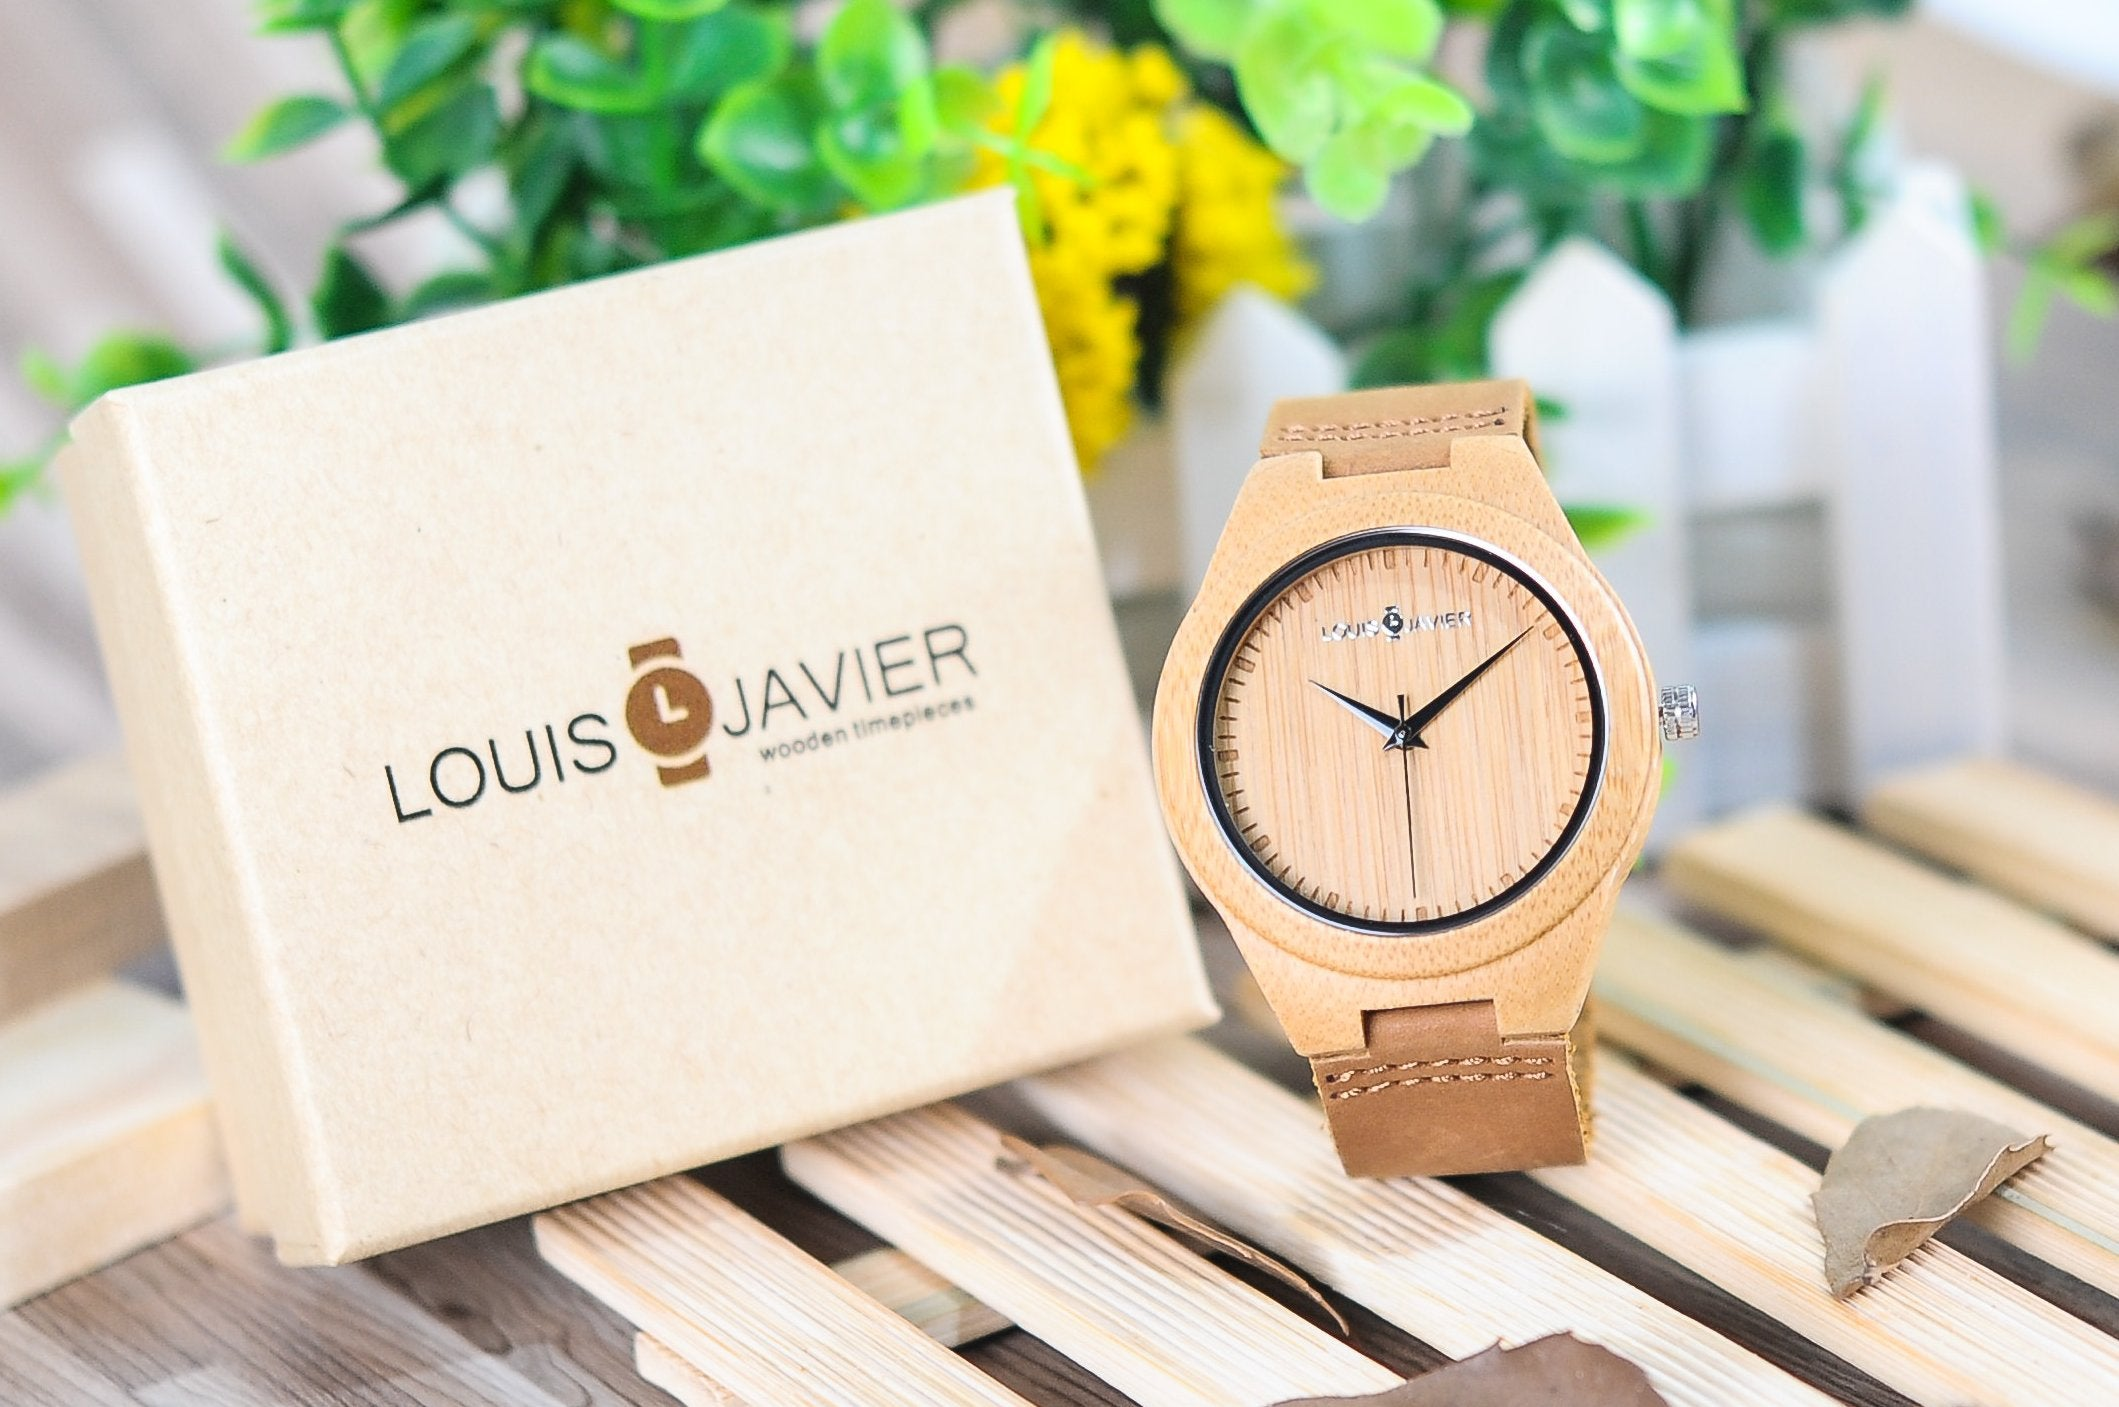 Unique wooden watch. Made from wood, bamboo, metal and natural leather, just the perfect gift.